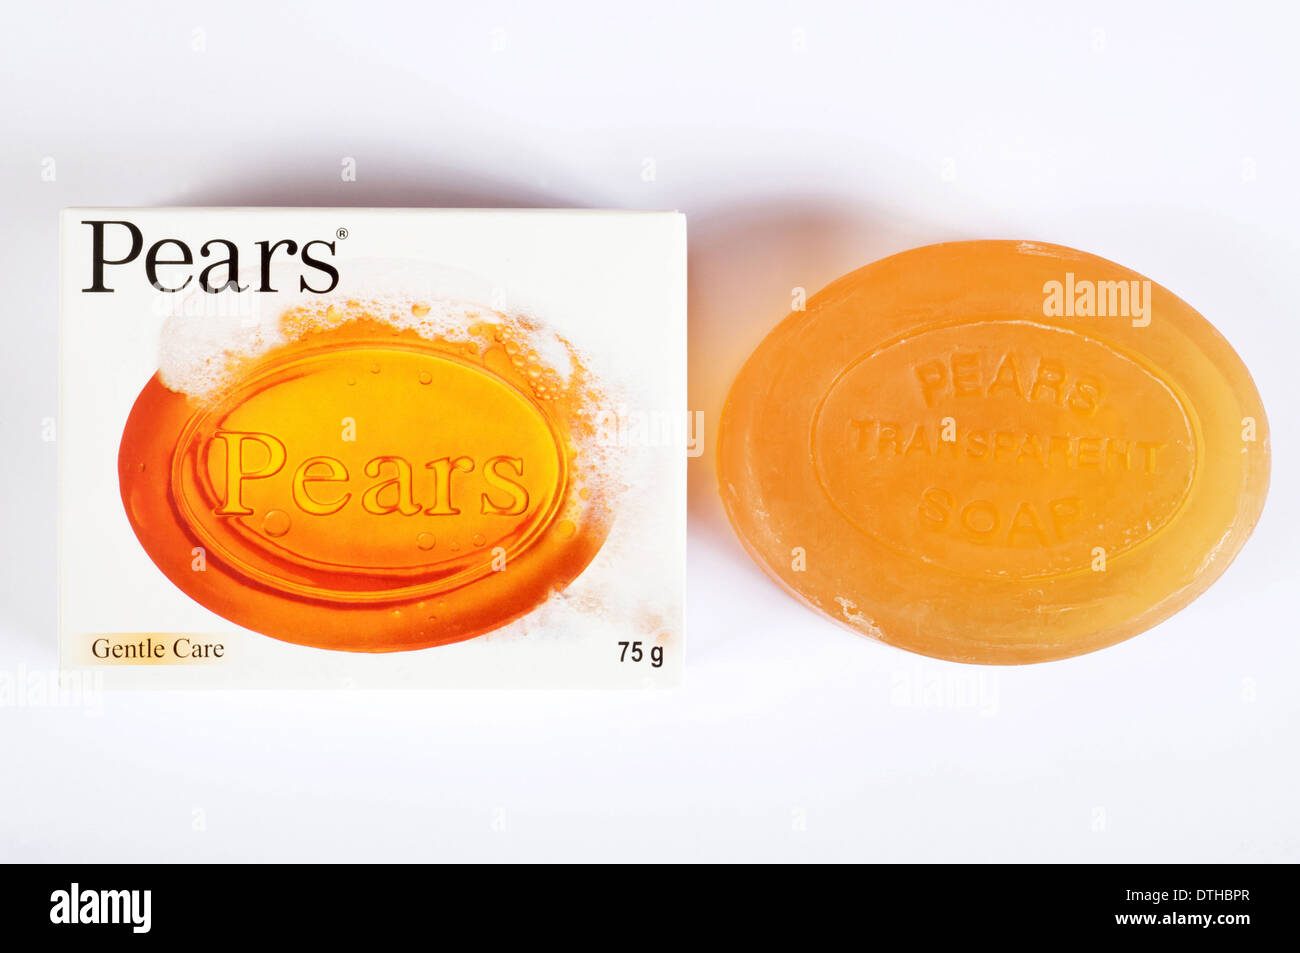 Pears transparent soap - Stock Image